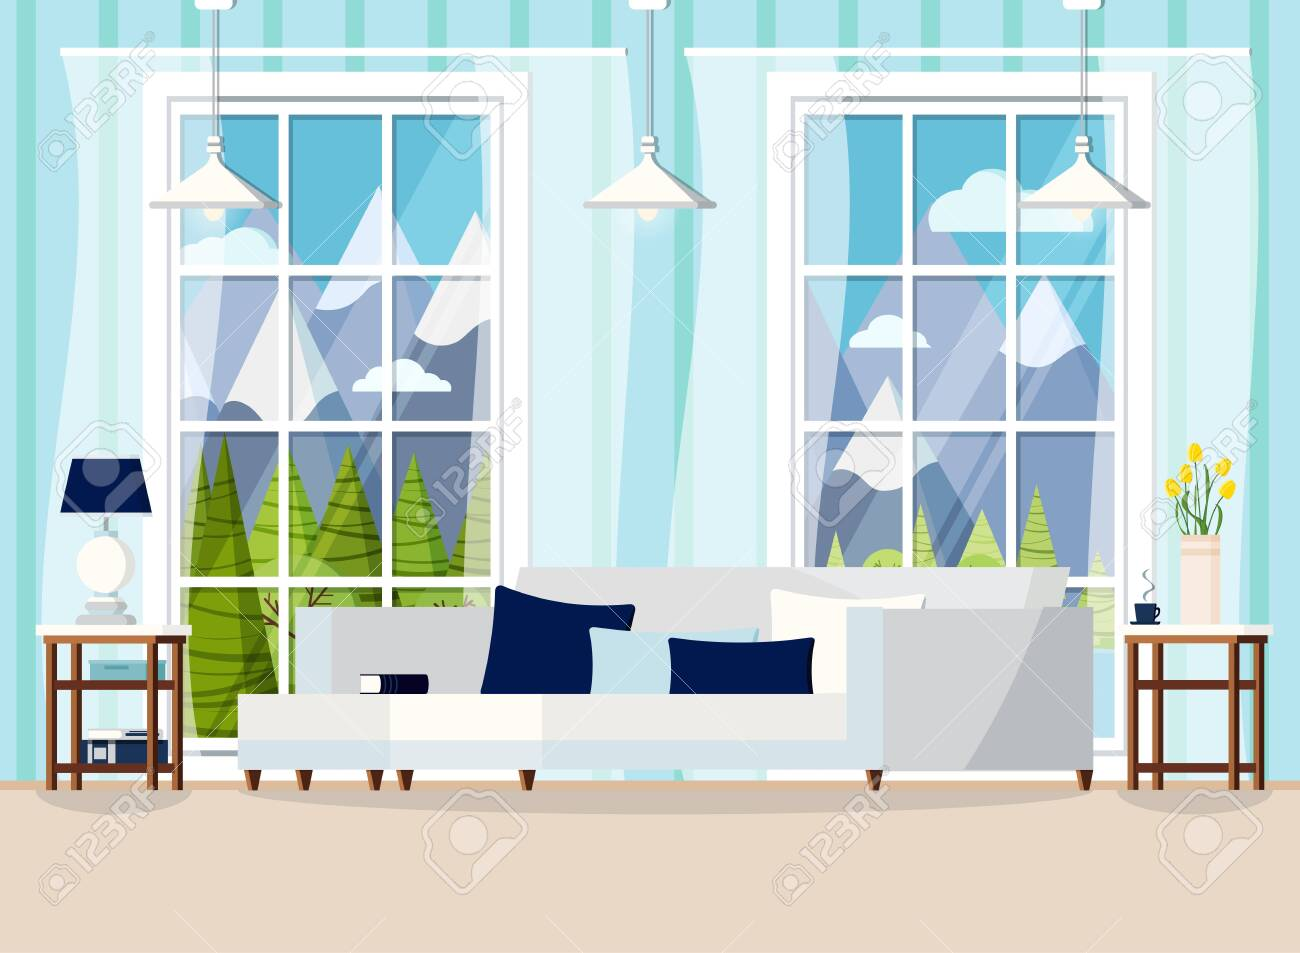 Cozy Living Room Home Interior Background With Sofa Lamp Two Royalty Free Cliparts Vectors And Stock Illustration Image 126057940